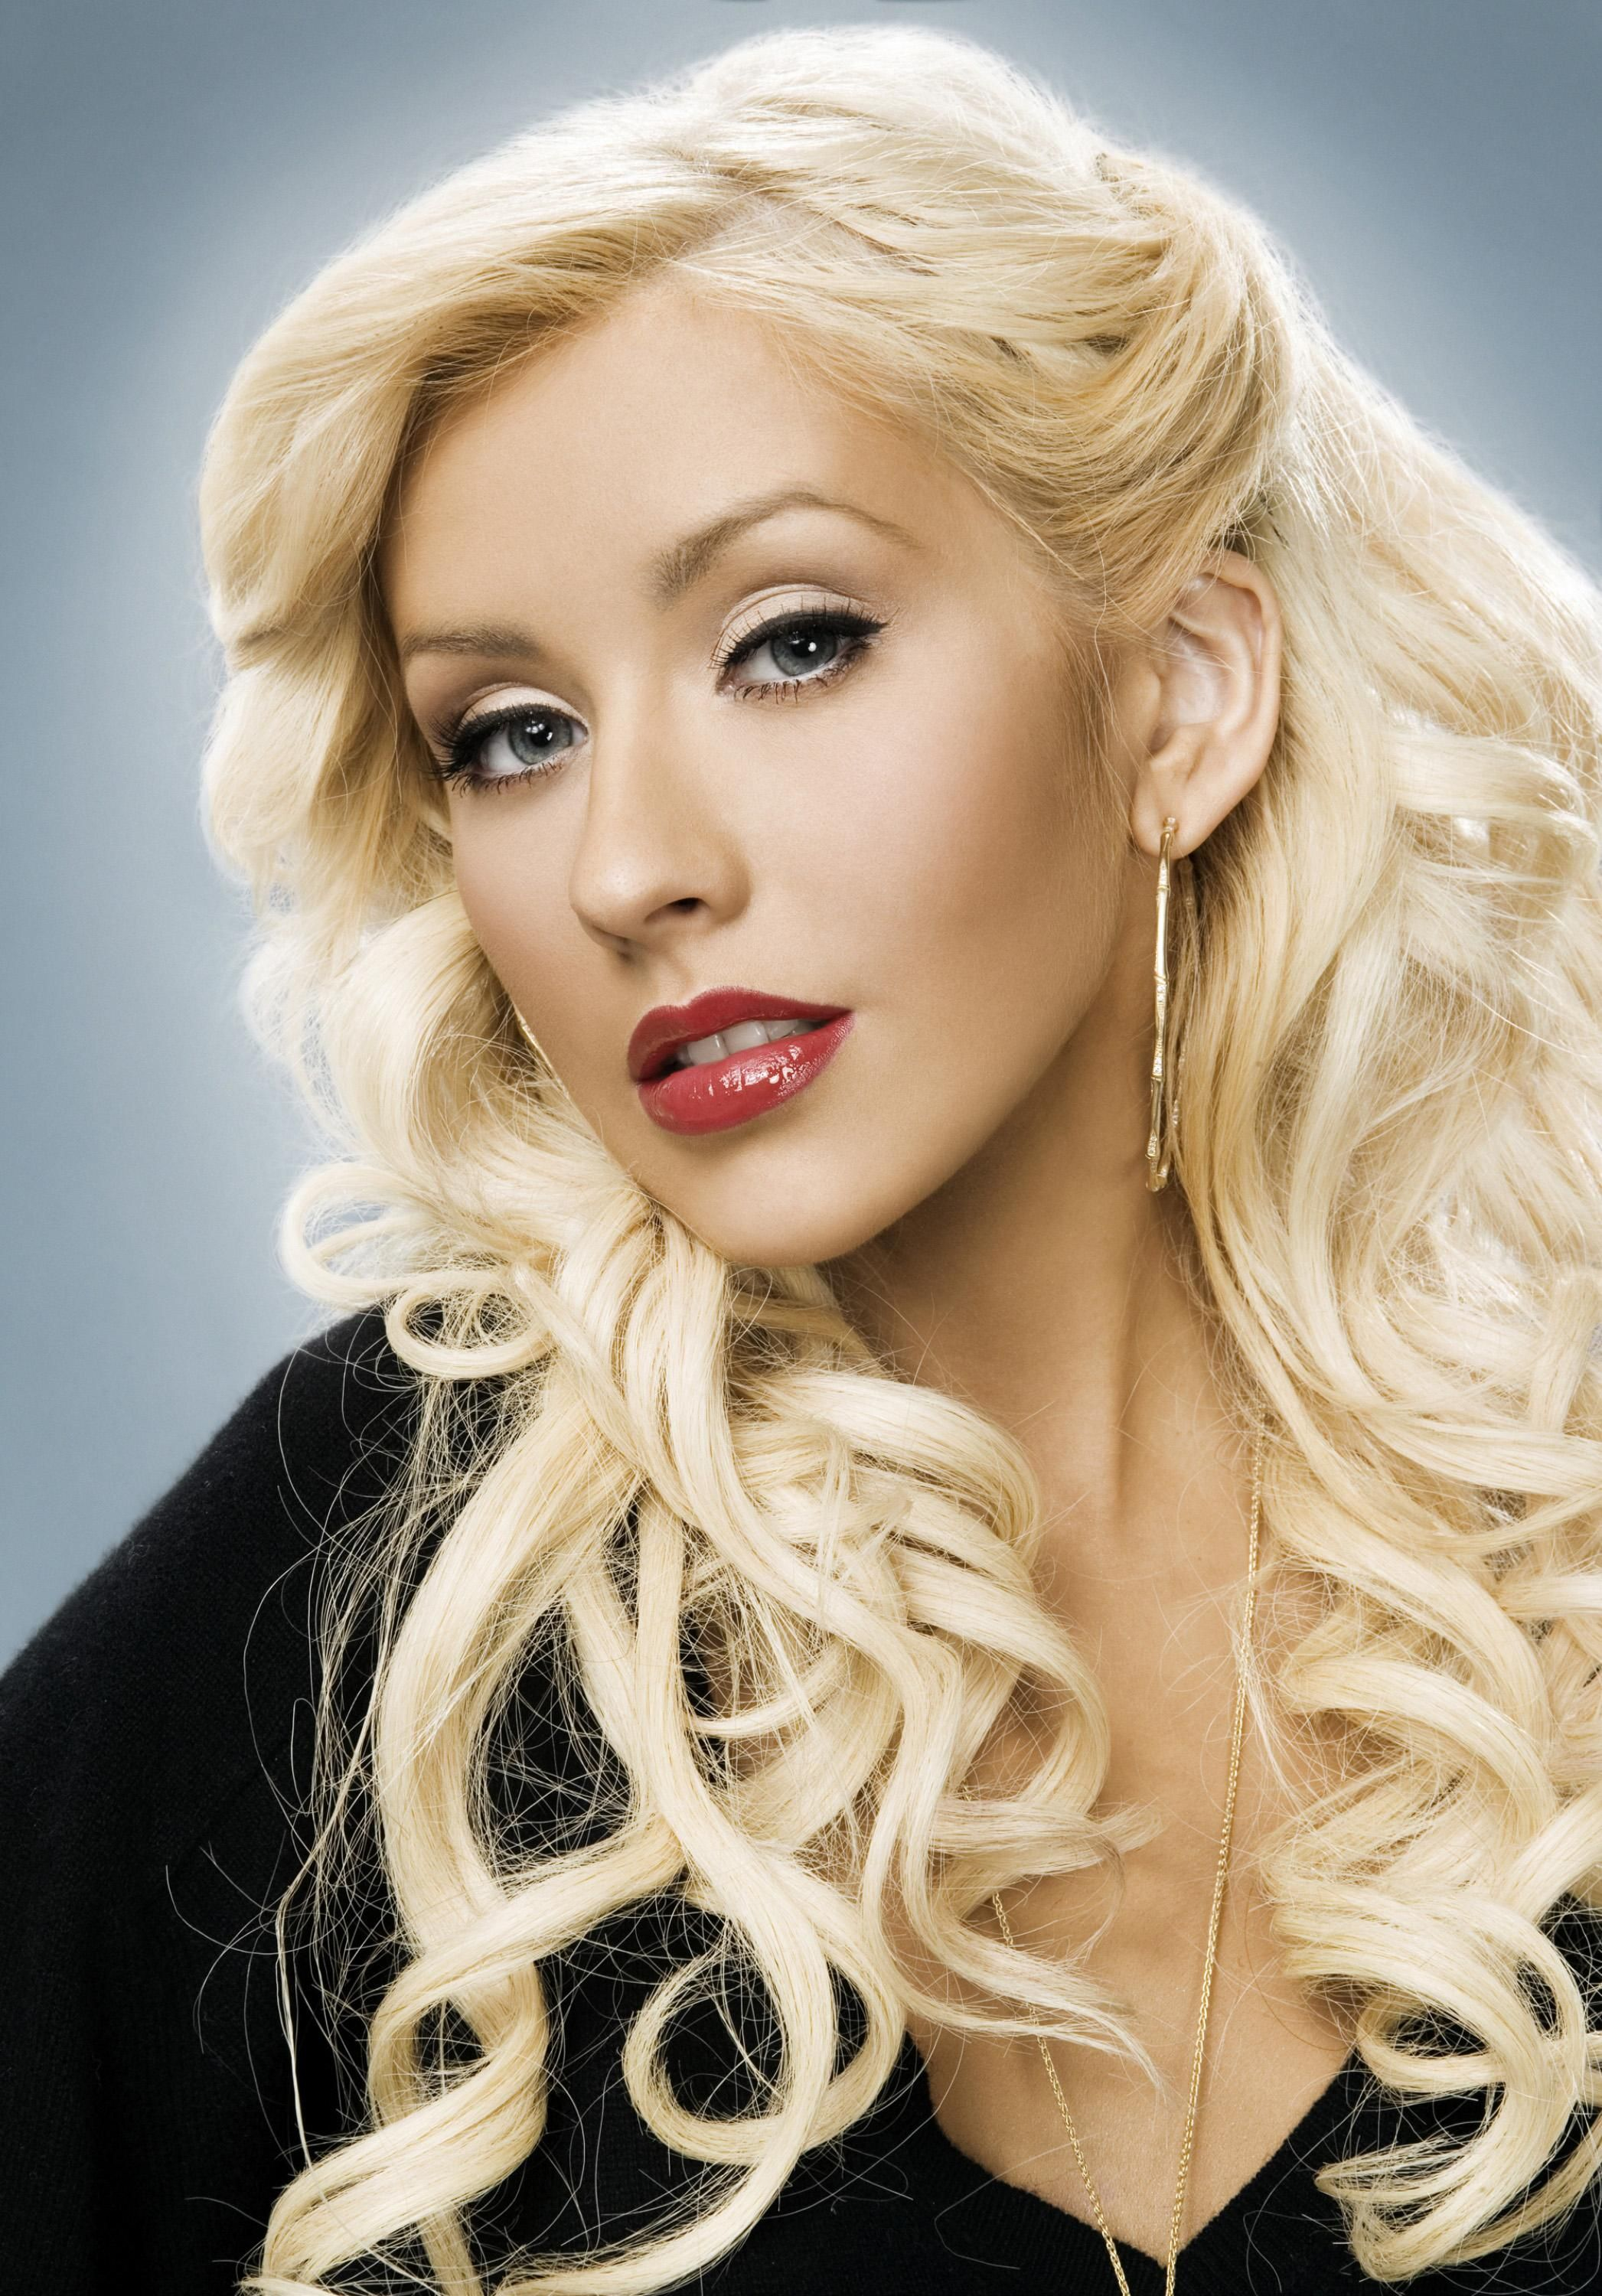 Aguilera Christina short 40s hairstyle pictures photo